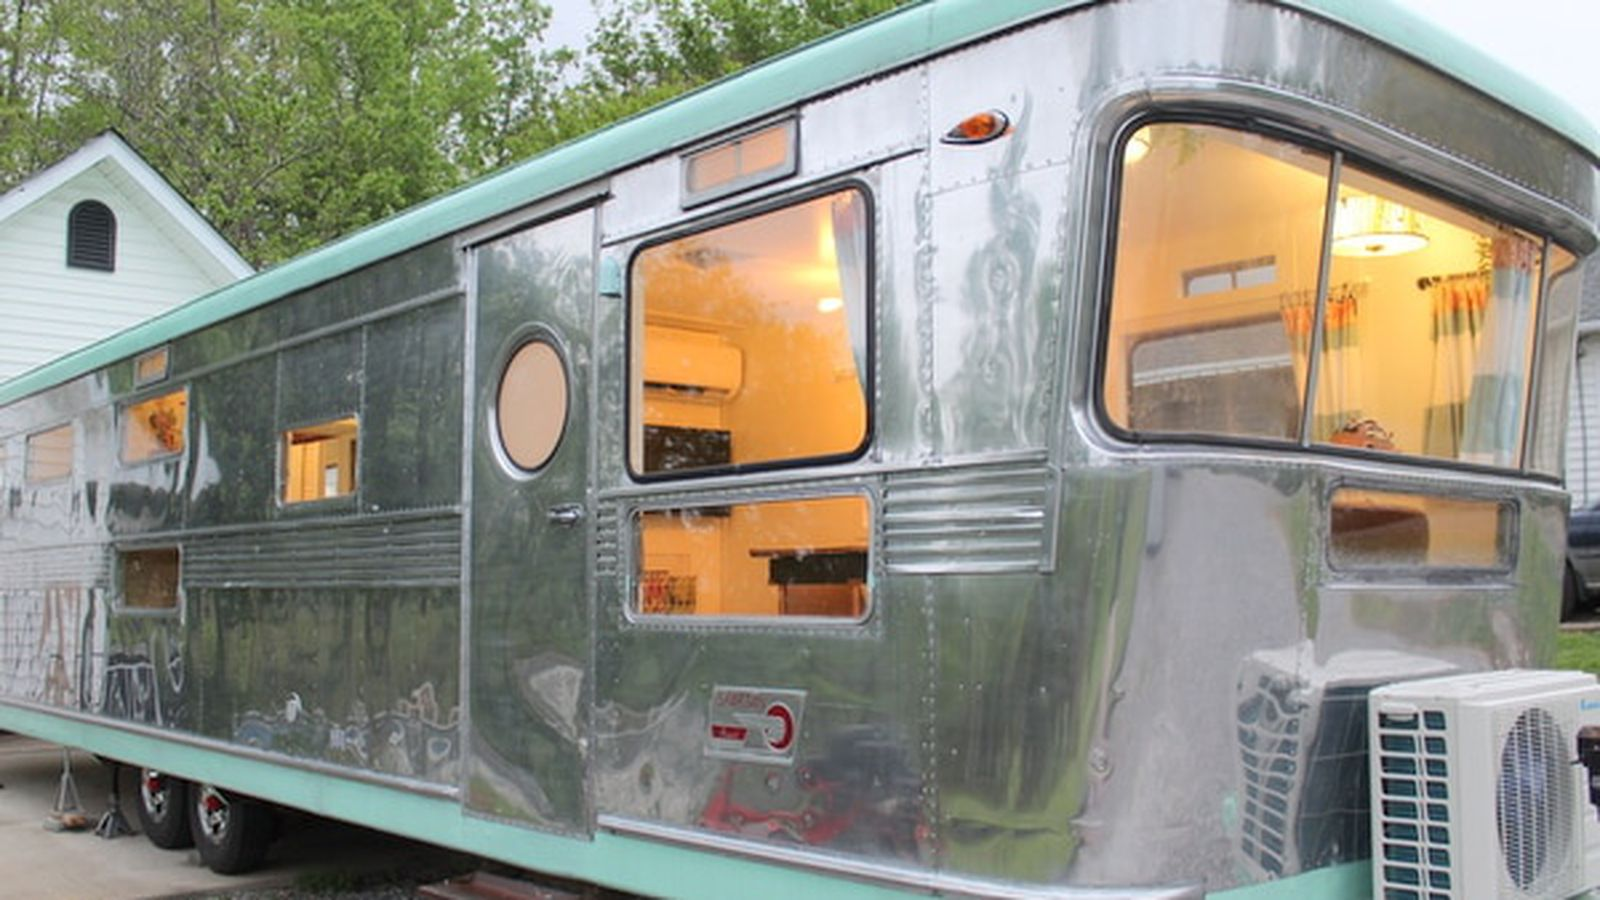 Meet Spartacus The Adorable Vintage Trailer That Will Win